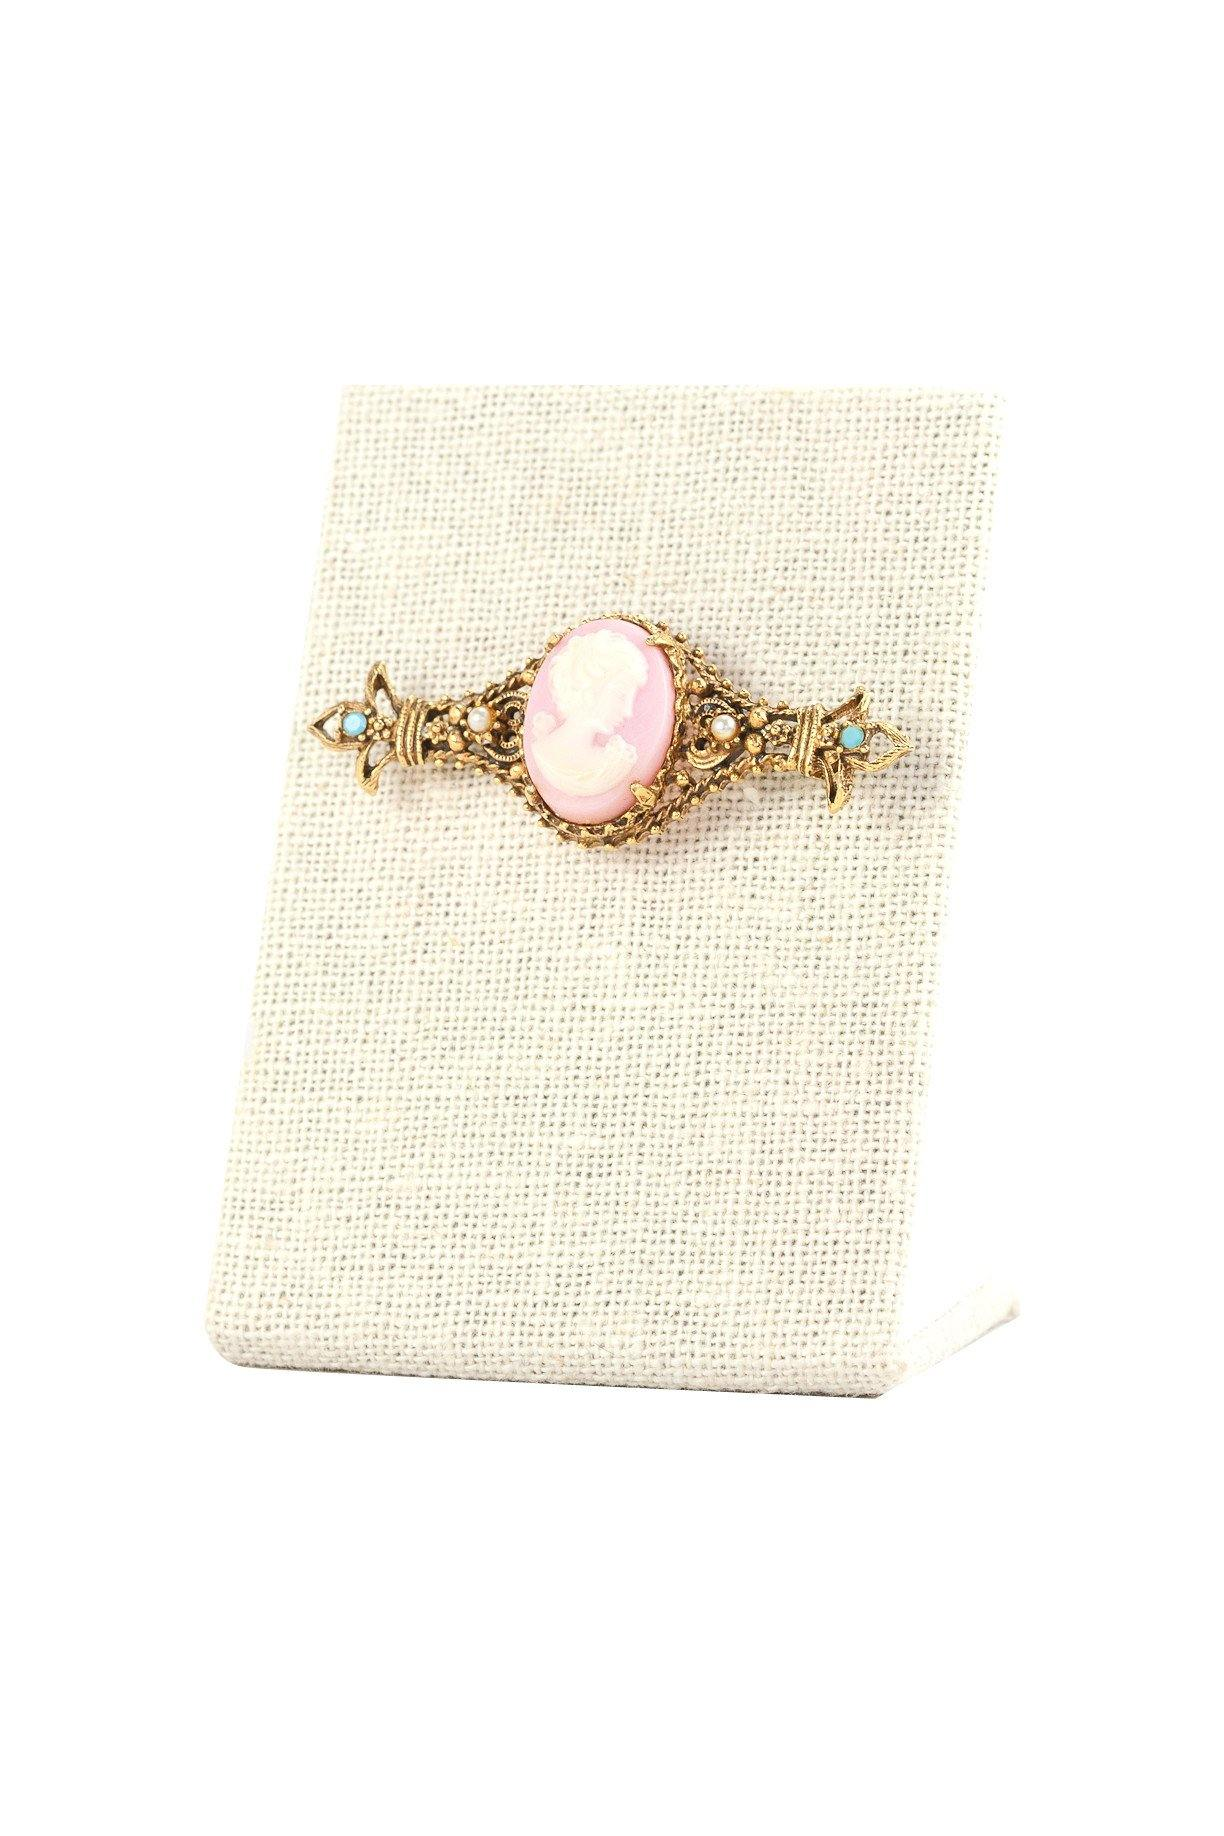 60's Vintage Cameo Statement Brooch